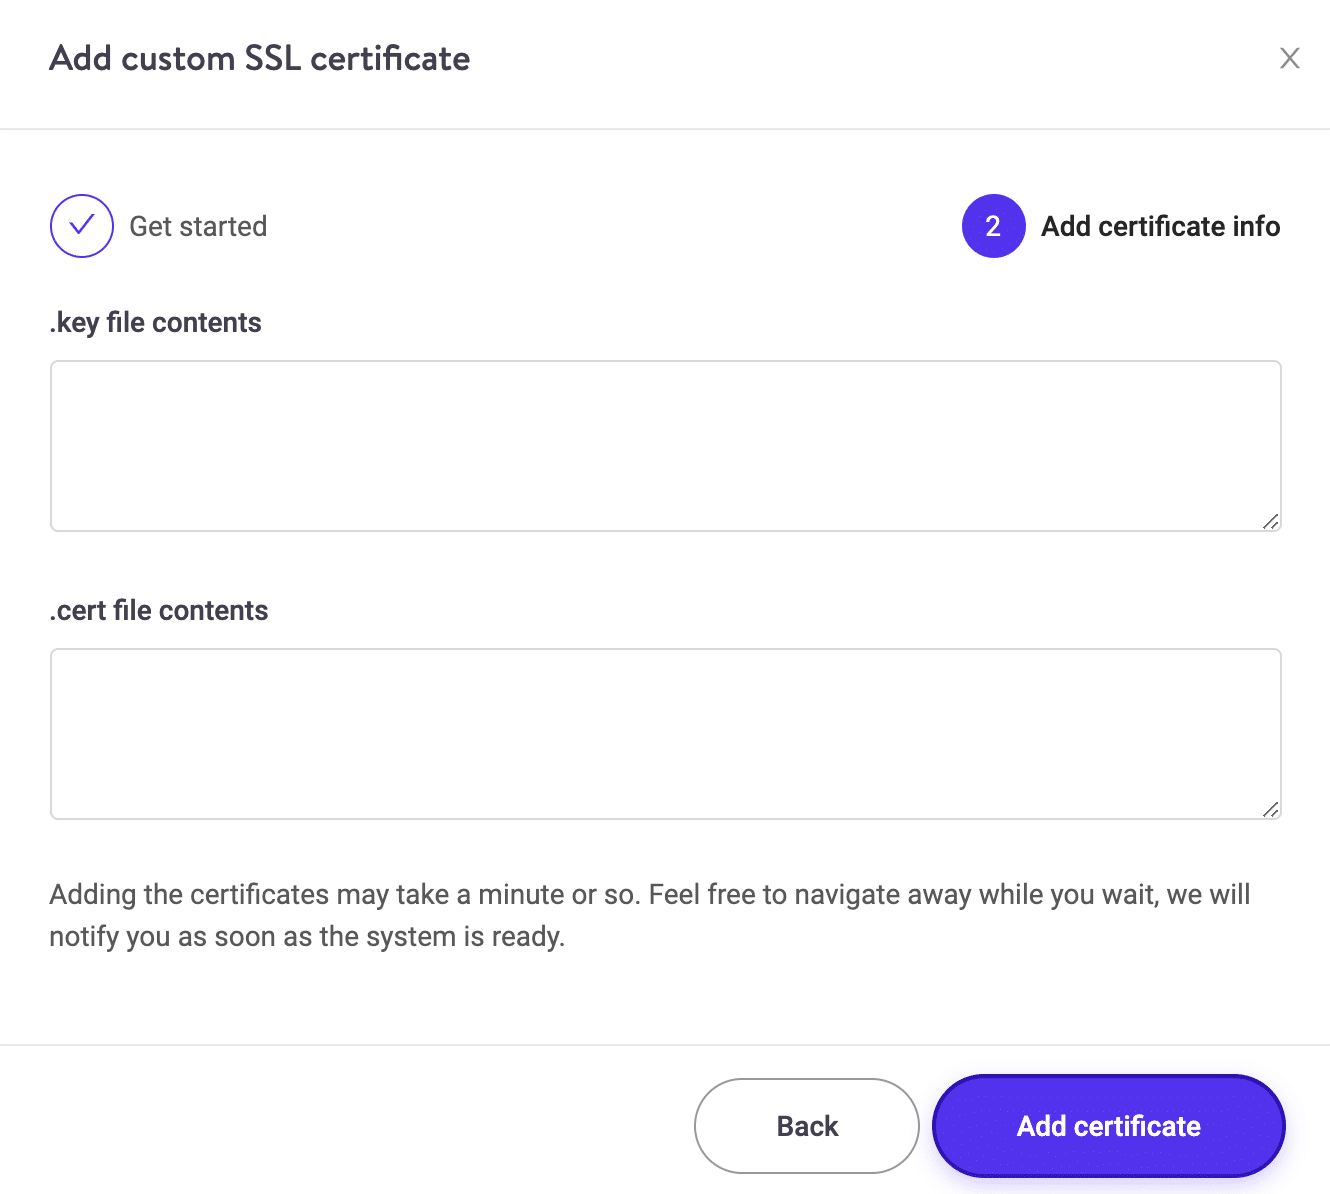 Add custom SSL certificate Step 2